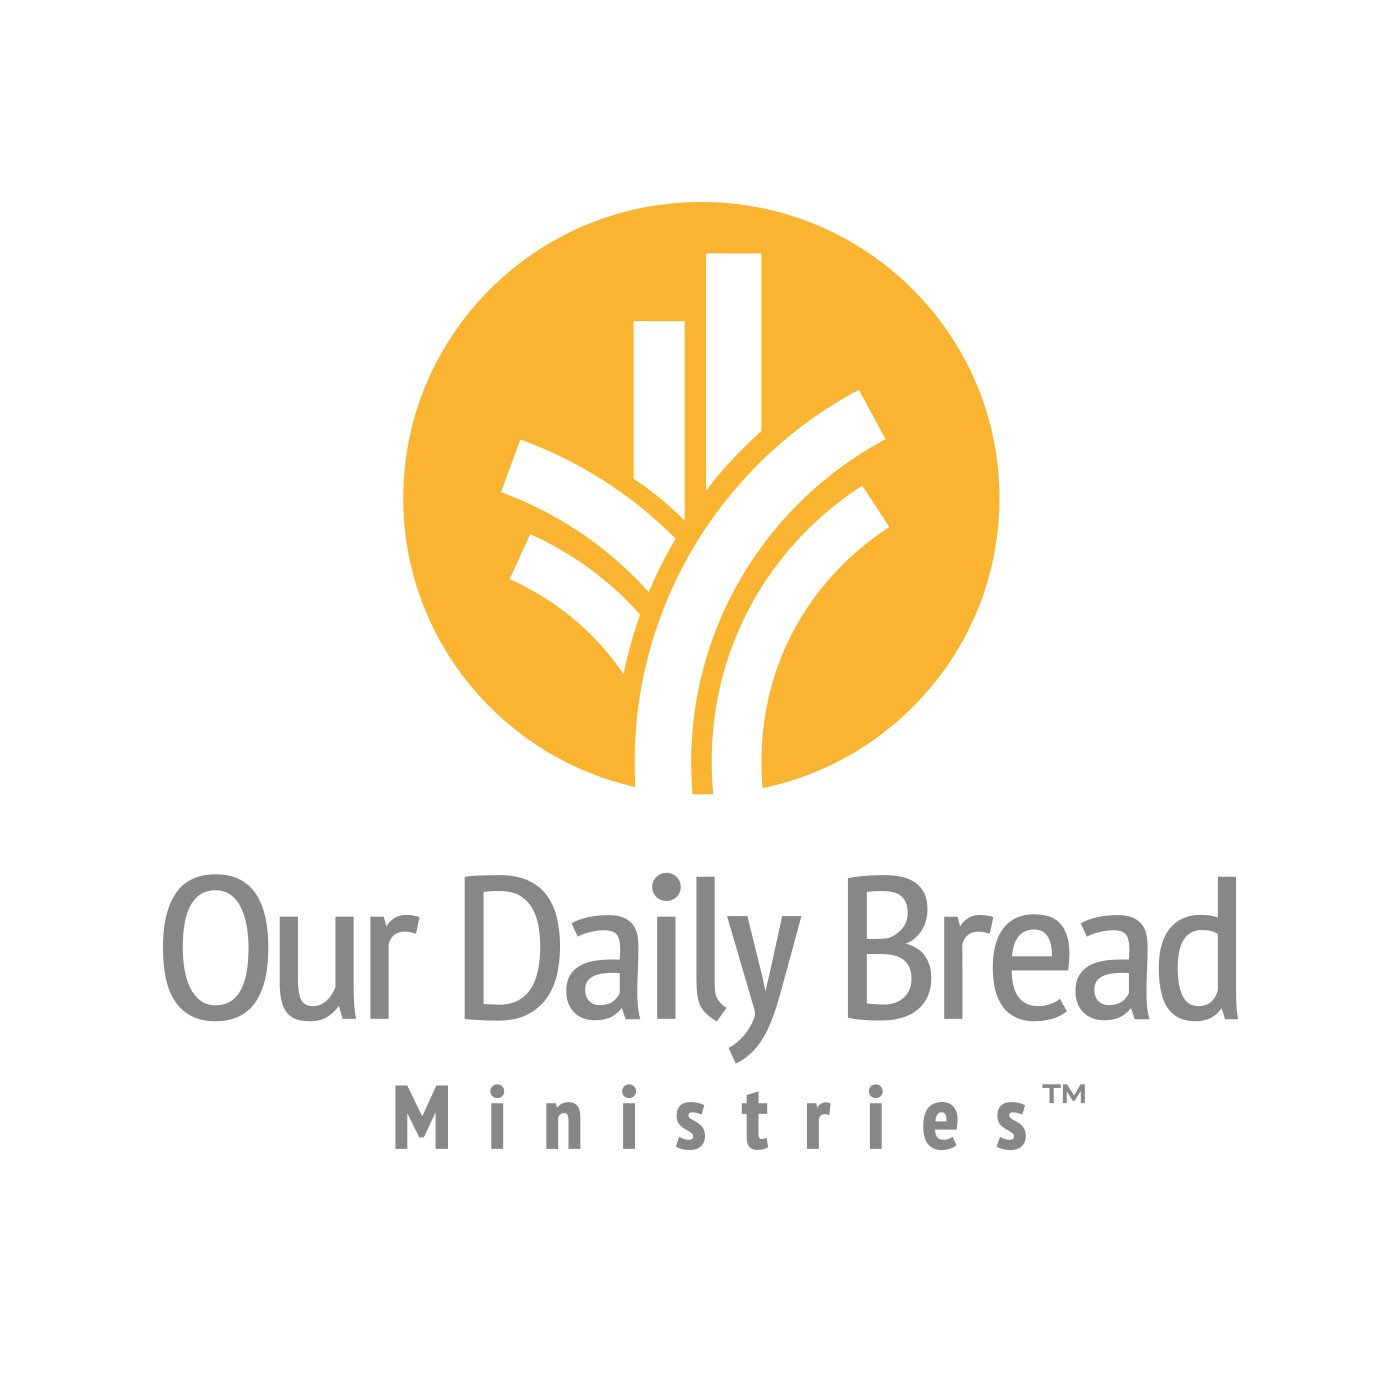 Our Daily Bread 5th December 2020, Our Daily Bread 5th December 2020 Devotional – The Yard-Sale Christmas, Latest Nigeria News, Daily Devotionals & Celebrity Gossips - Chidispalace